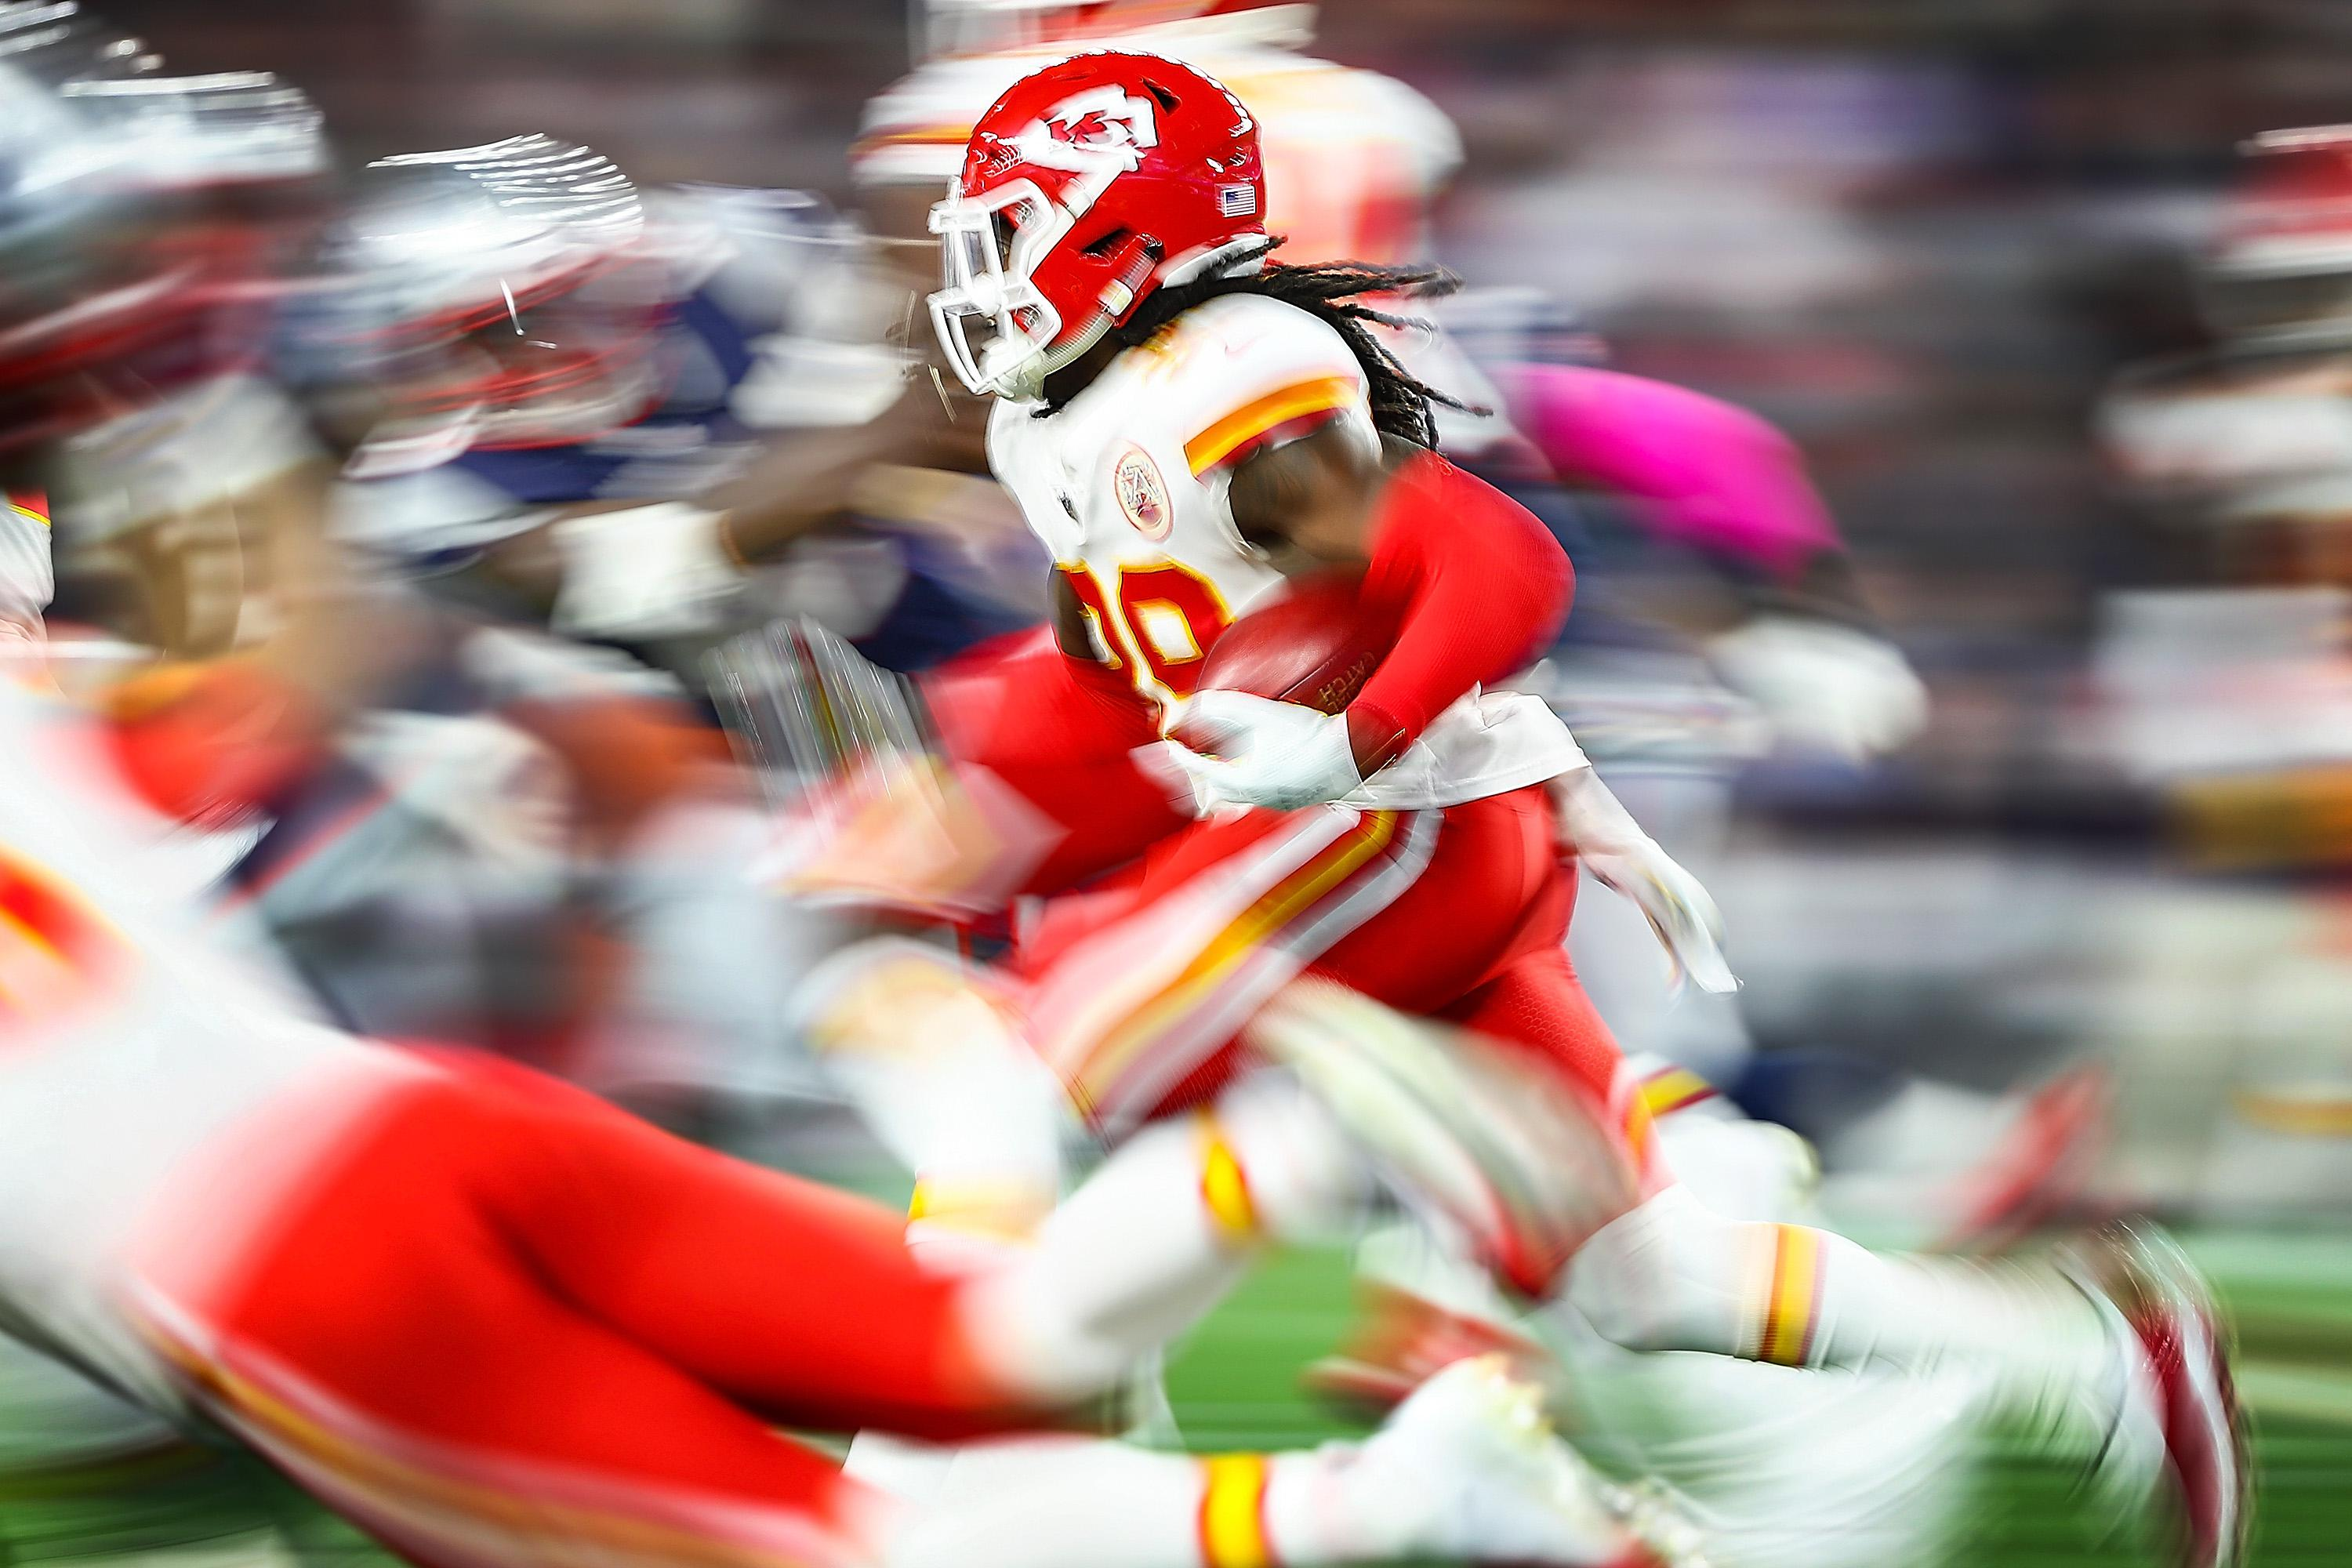 FOXBOROUGH, MA - OCTOBER 14:  Tremon Smith #39 of the Kansas City Chiefs runs with the ball in the third quarter of a game against the New England Patriots at Gillette Stadium on October 14, 2018 in Foxborough, Massachusetts.  (Photo by Adam Glanzman/Getty Images)